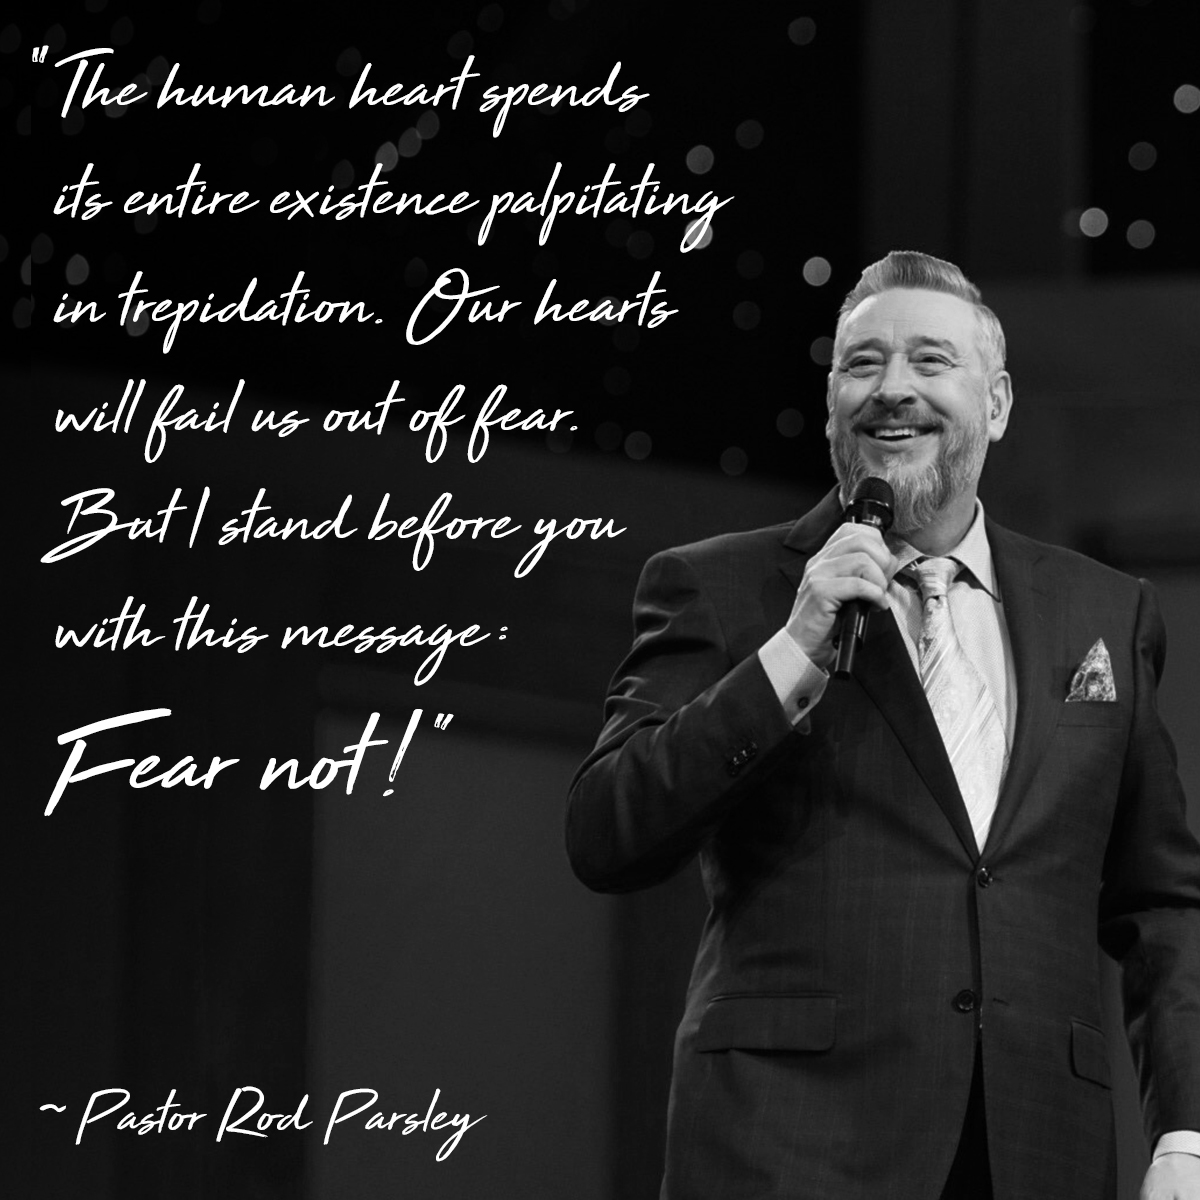 """The human heart spends its entire existence palpitating in trepidation. Our hearts will fail us out of fear. But I stand before you with this message: Fear not!"" – Pastor Rod Parsley"